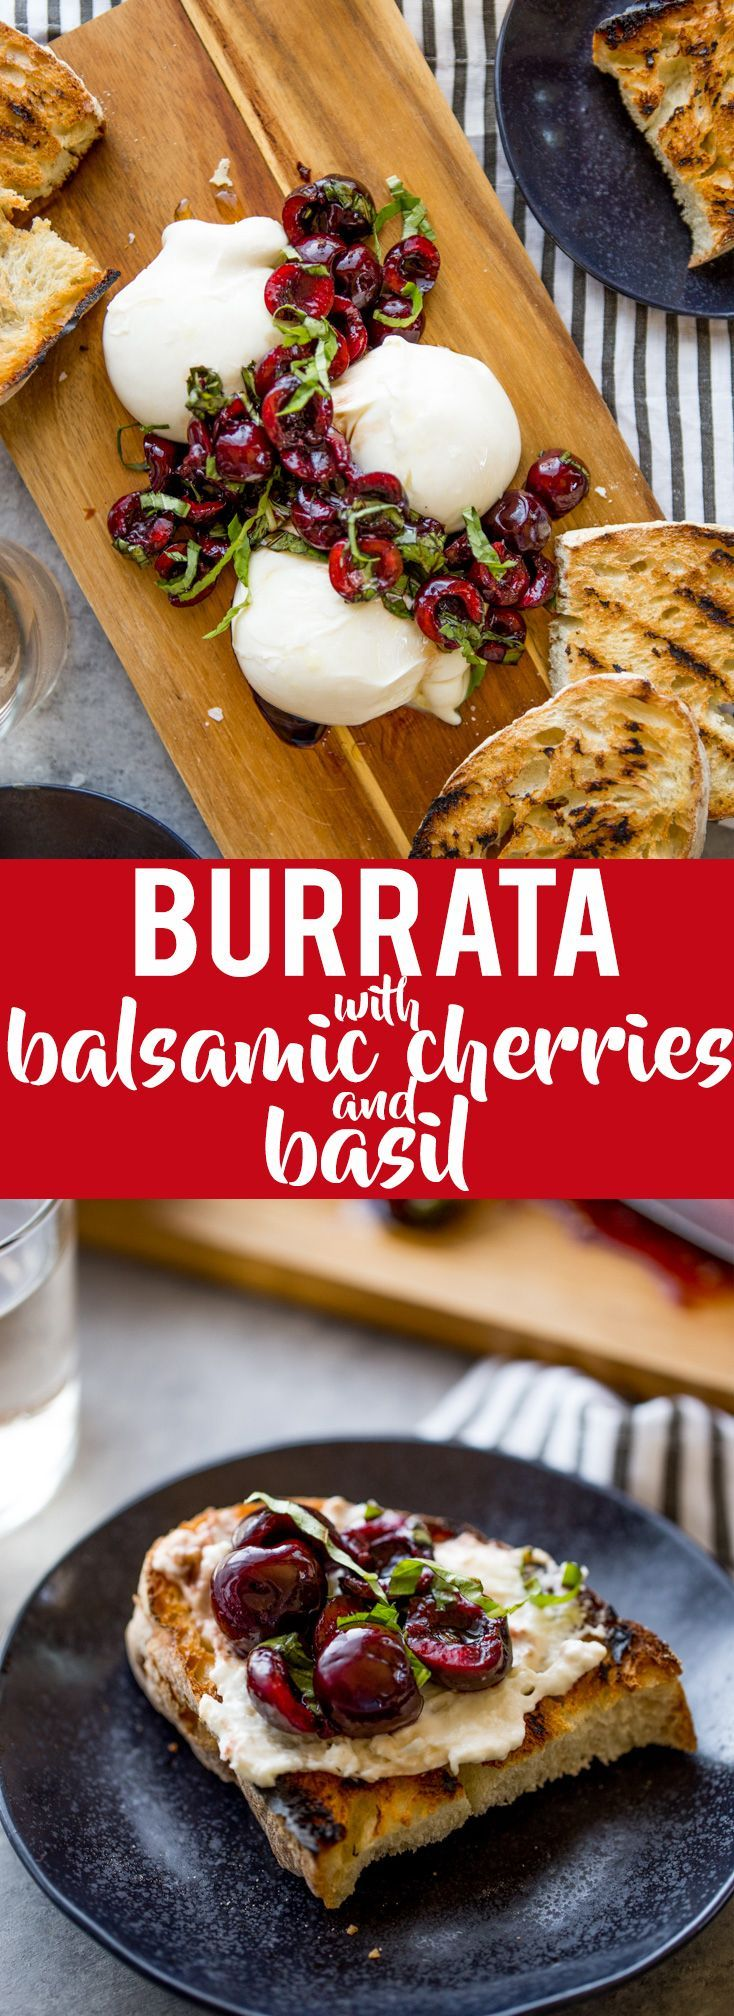 This Burrata with Balsamic Cherries and Basil the ultimate summer appetizer! Creamy, fresh burrata paired with juicy cherries and fragrant basil uses summer produce at its best, and no cooking required! Summer appetizers | Cherry Recipes | basil Recipes |